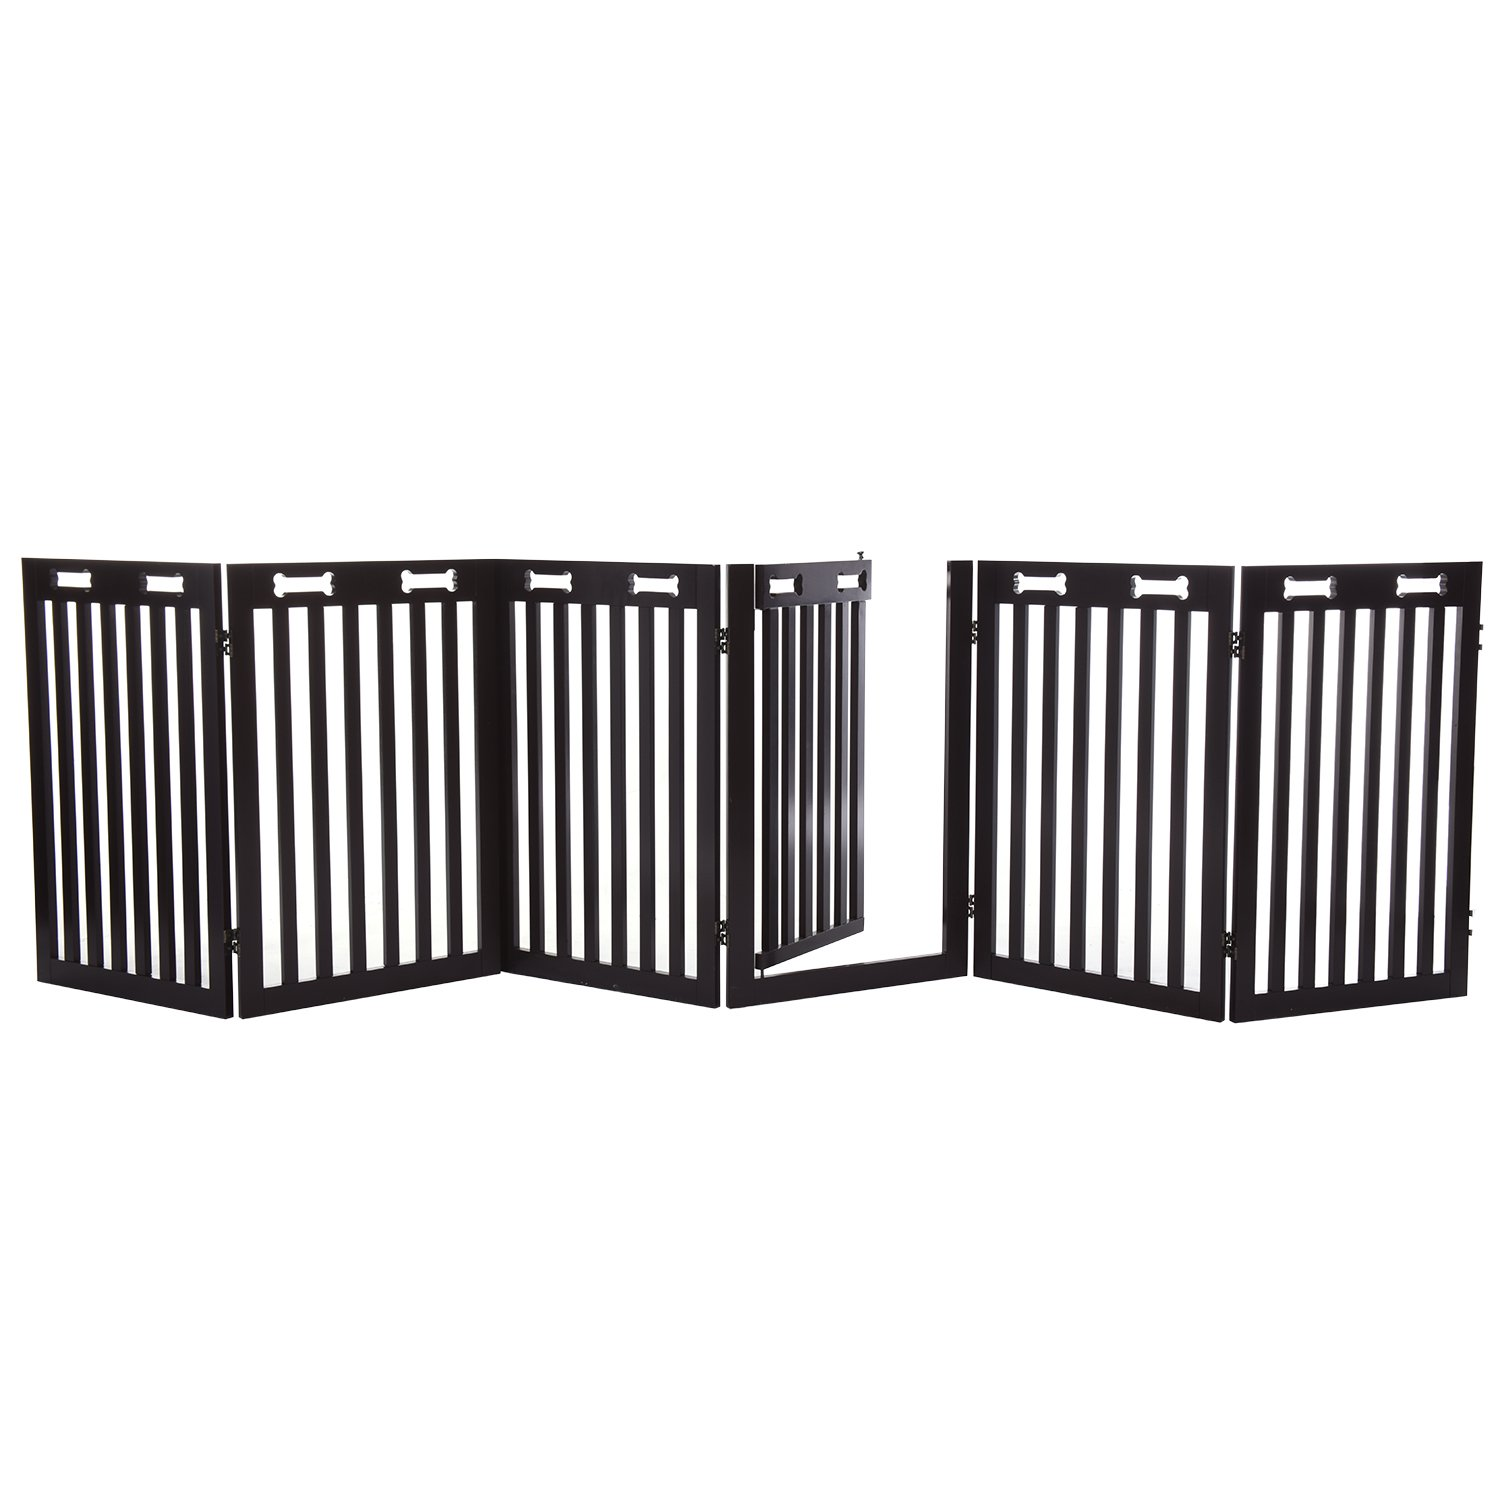 Arf Pets Free Standing Wood Dog Gate with Walk Through Door Expands Up to 80 Wide Bonus Set of Foot Supporters Included 31.5 High